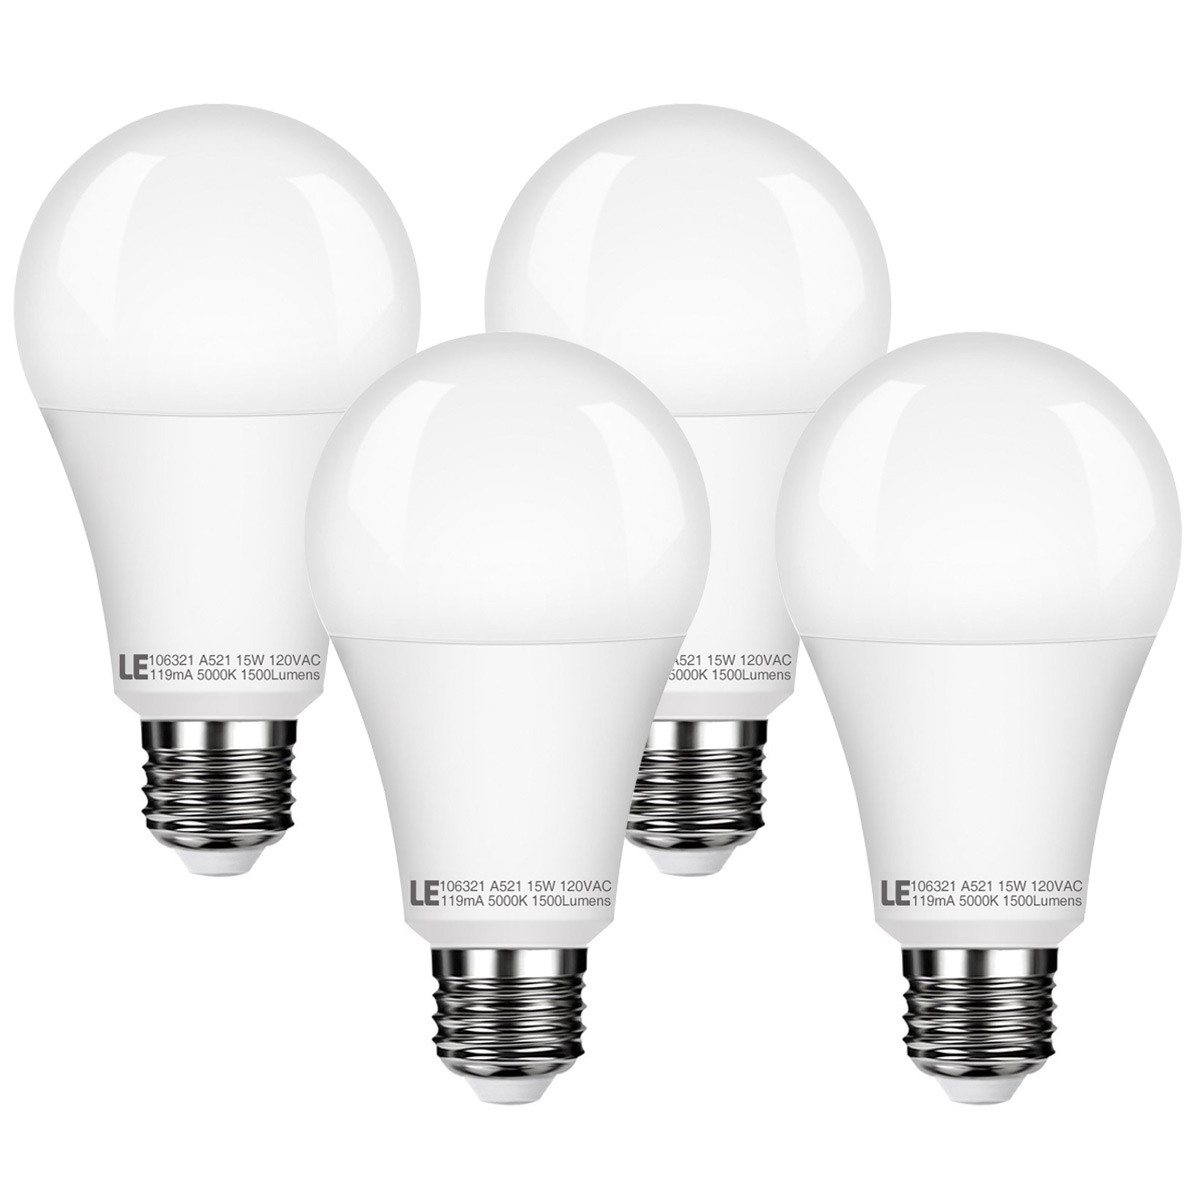 Lighting EVER 5W A21 E26 Warm White 2700K LED Bulbs, 1500lm Dimmable LED Light Bulbs, 100W Incandescent Equivalent 2 Pack